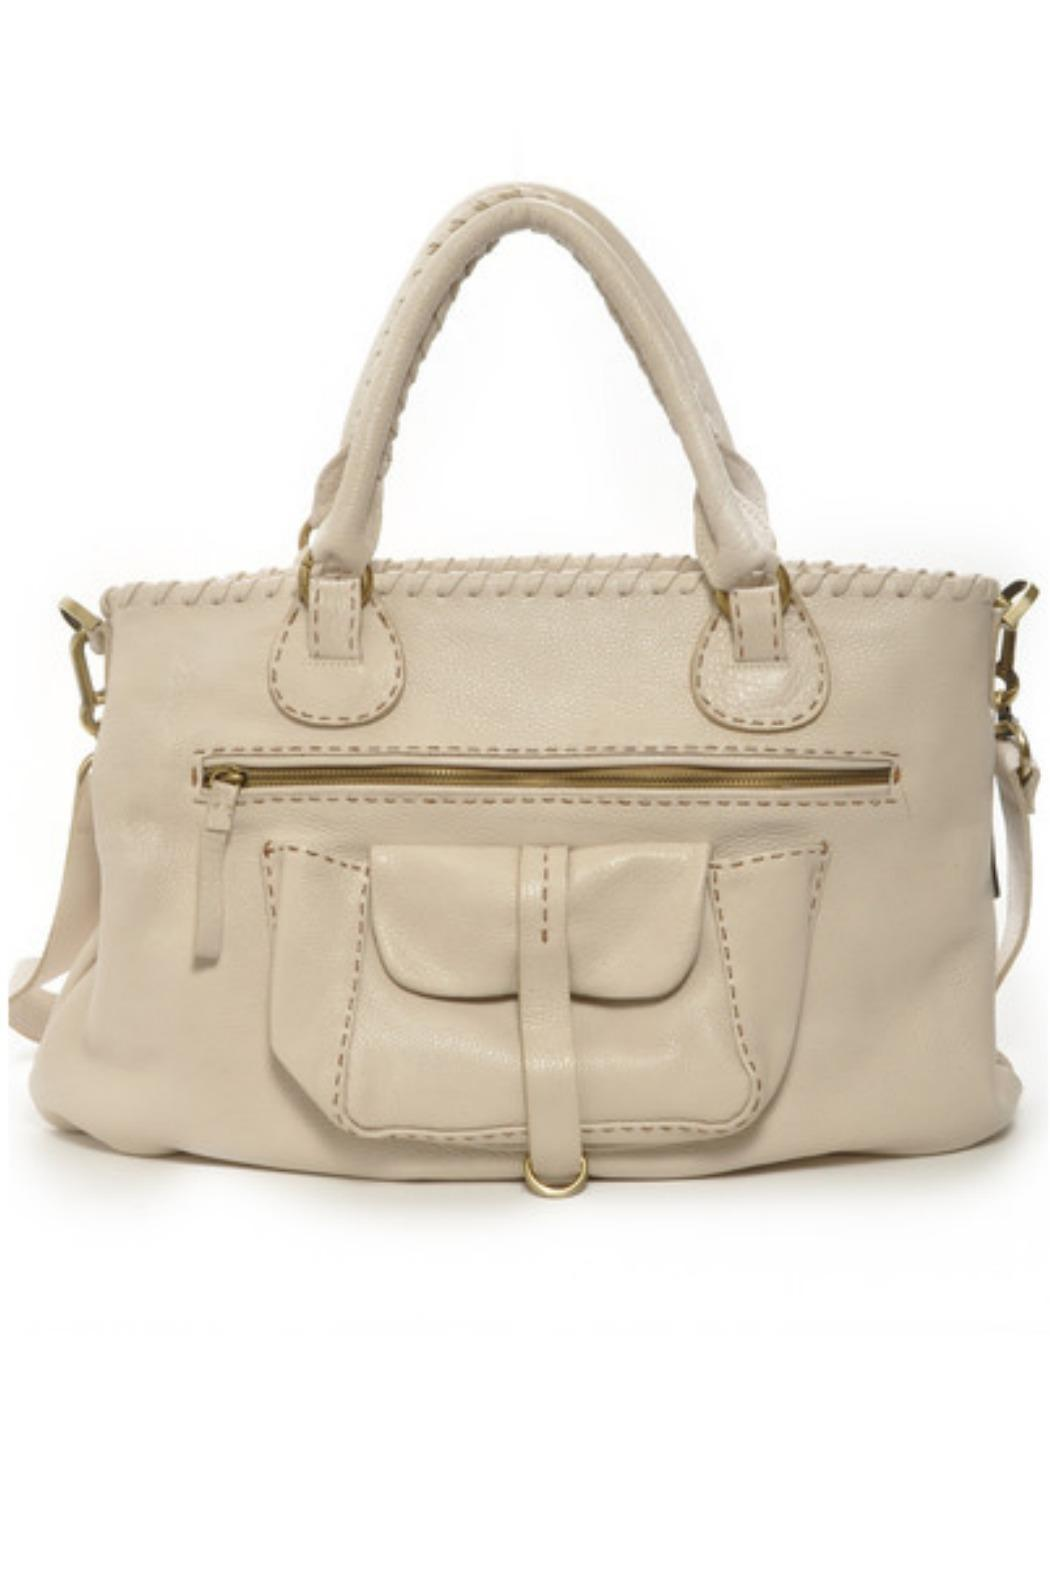 32548b44e43f Carla Mancini Giselle Shoulder Bag from New York by Let s Bag It ...